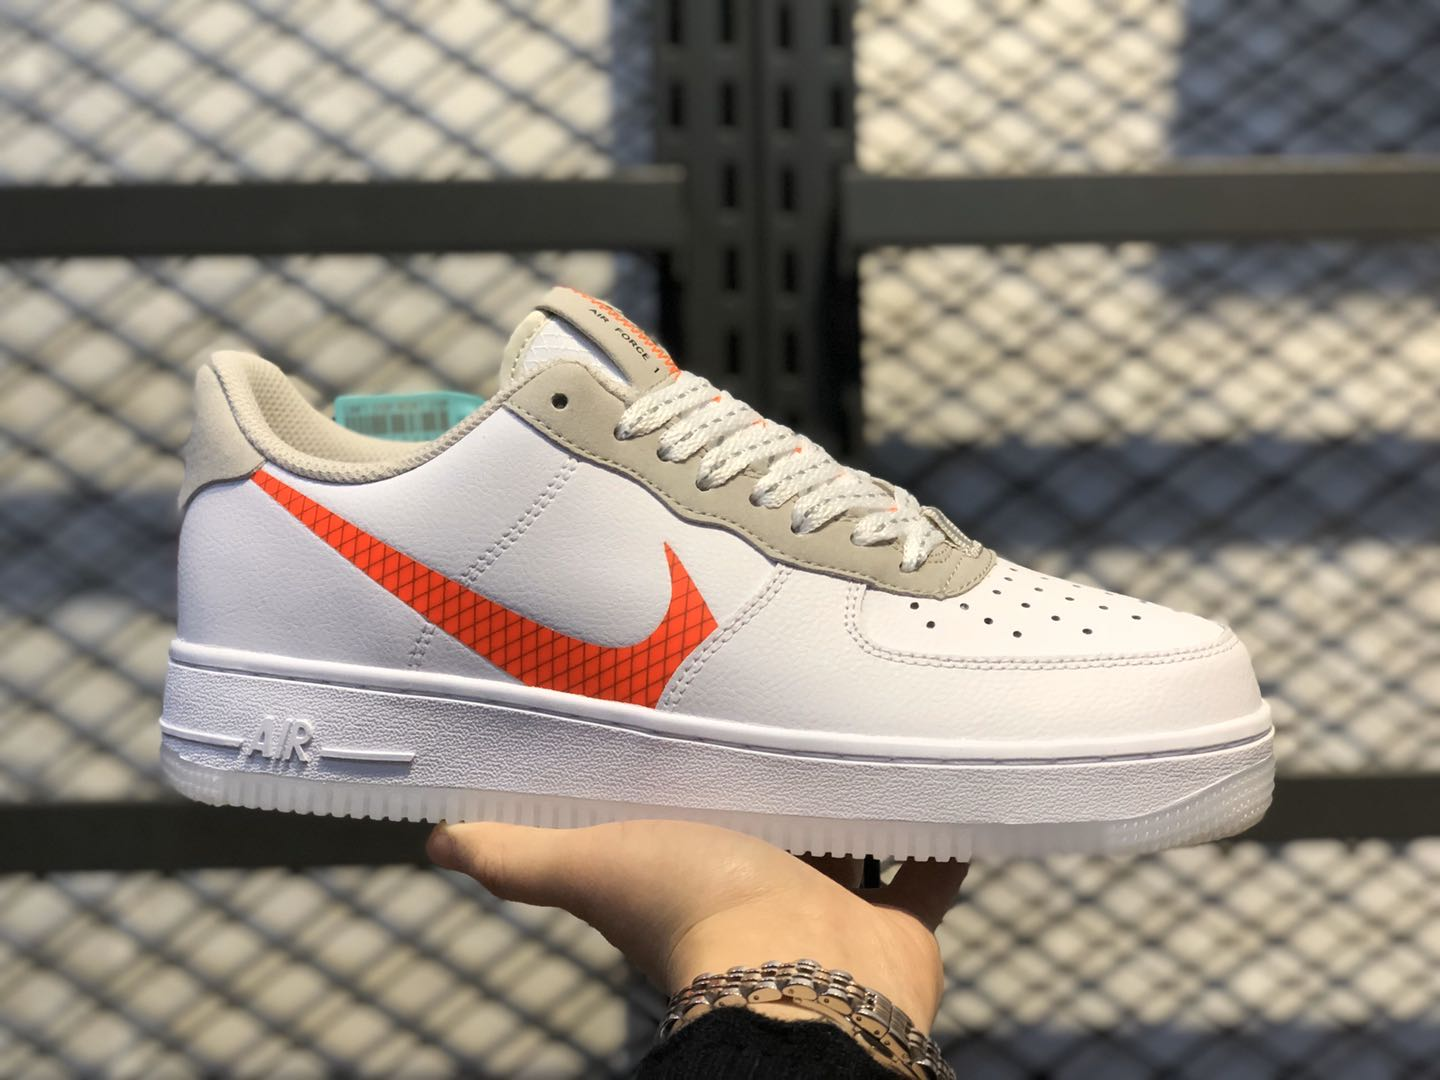 2020 Buy Nike Air Force 1 Low White/Orange Casual Shoes CD0888-100